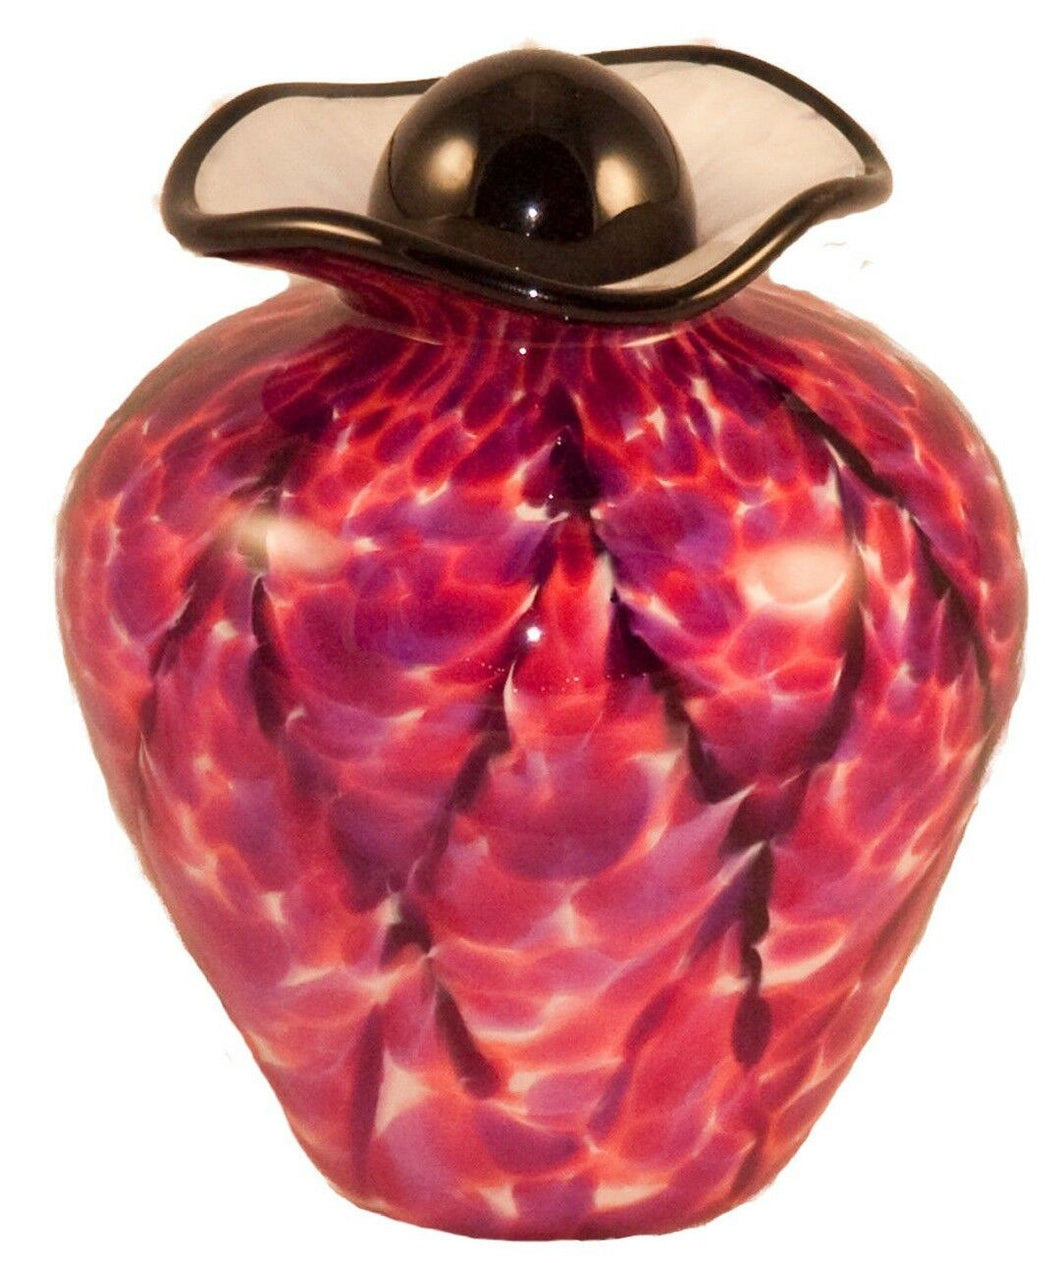 100 Cubic Inch Rome Rose Funeral Glass Cremation Urn for Ashes